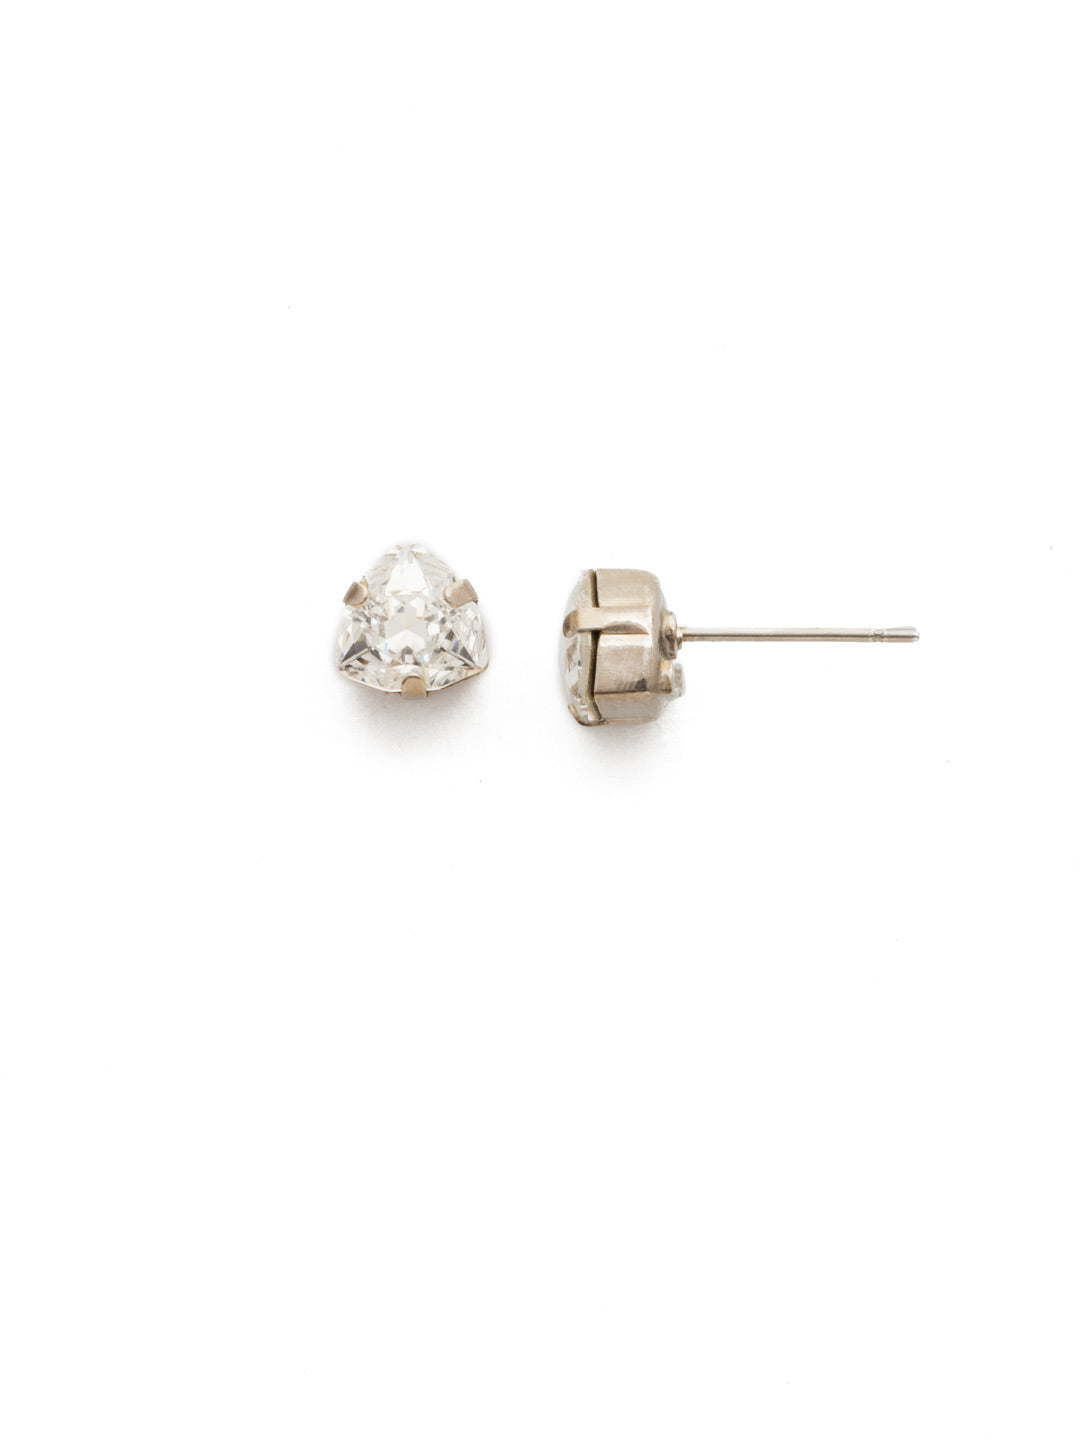 Sedge Stud Earrings - EDX1ASSTC